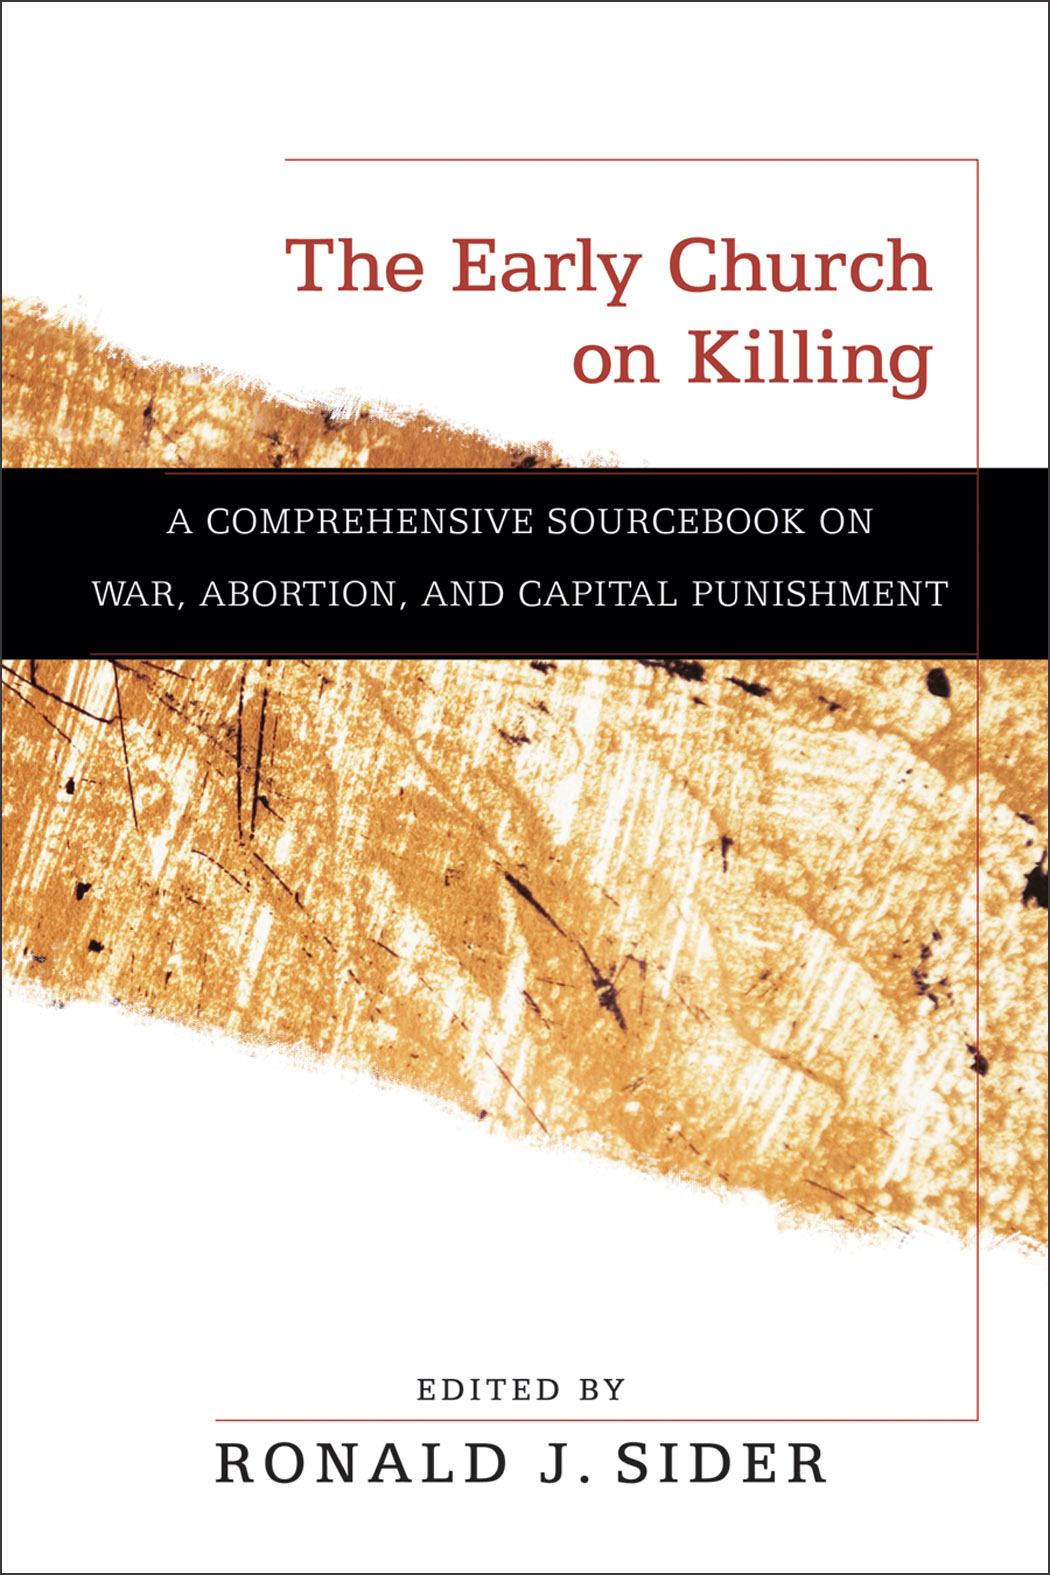 an analysis of the topic of abortion and the morally just killing The moral object of direct abortion is the killing of an innocent human  away  from death, does not change the inherent moral meaning of the act  for  example, a lie in a small matter is a sin, just as a lie in a grave  certain  commentators approach the issue of direct and indirect abortion, and the issues  of.